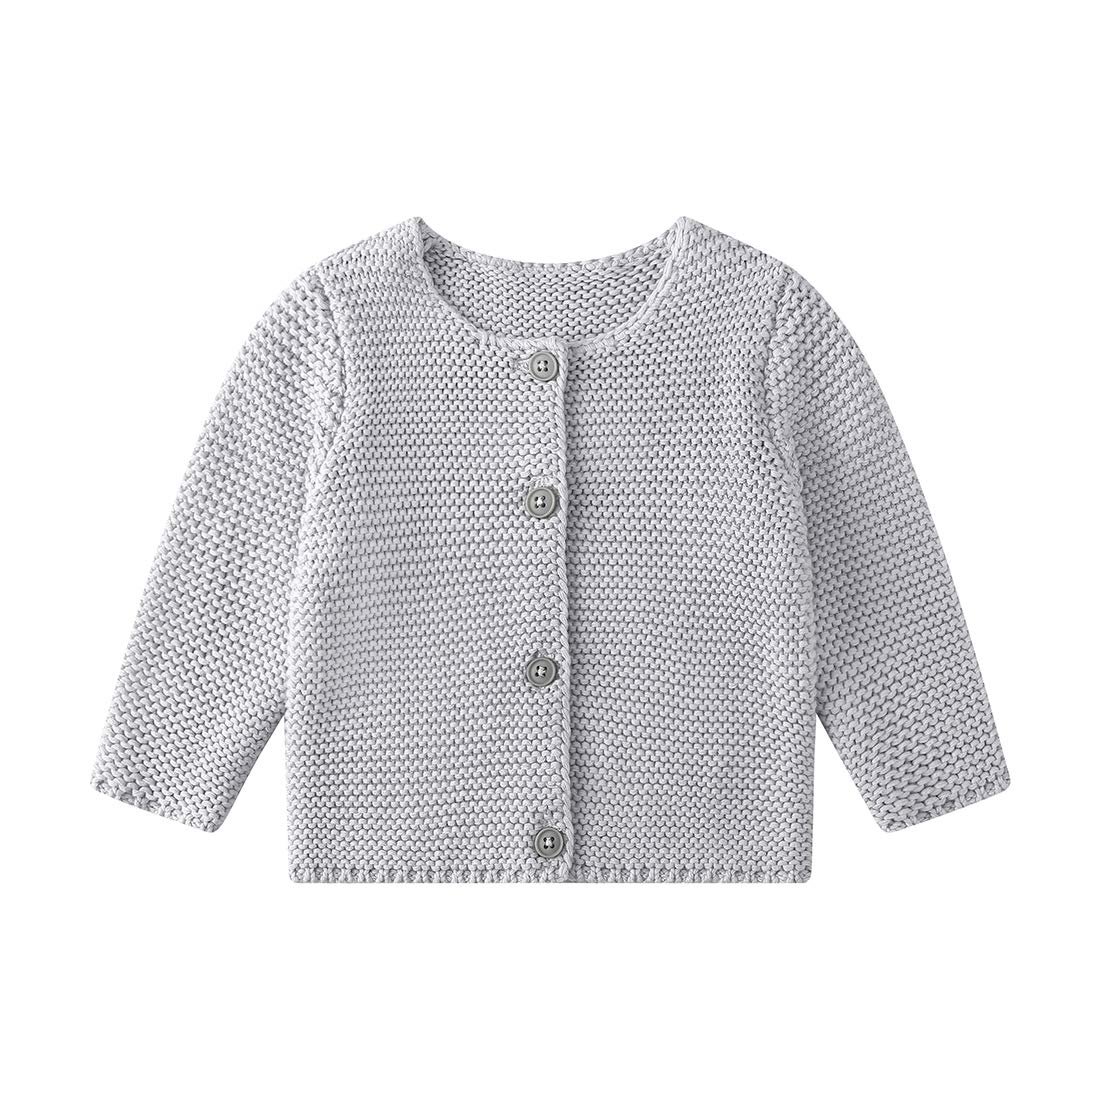 Baby Girls' Long Sleeve Knitted Cardigan Sweaters Toddler Button-Down Cotton Coat Outerwear 71YA6xIRD9L